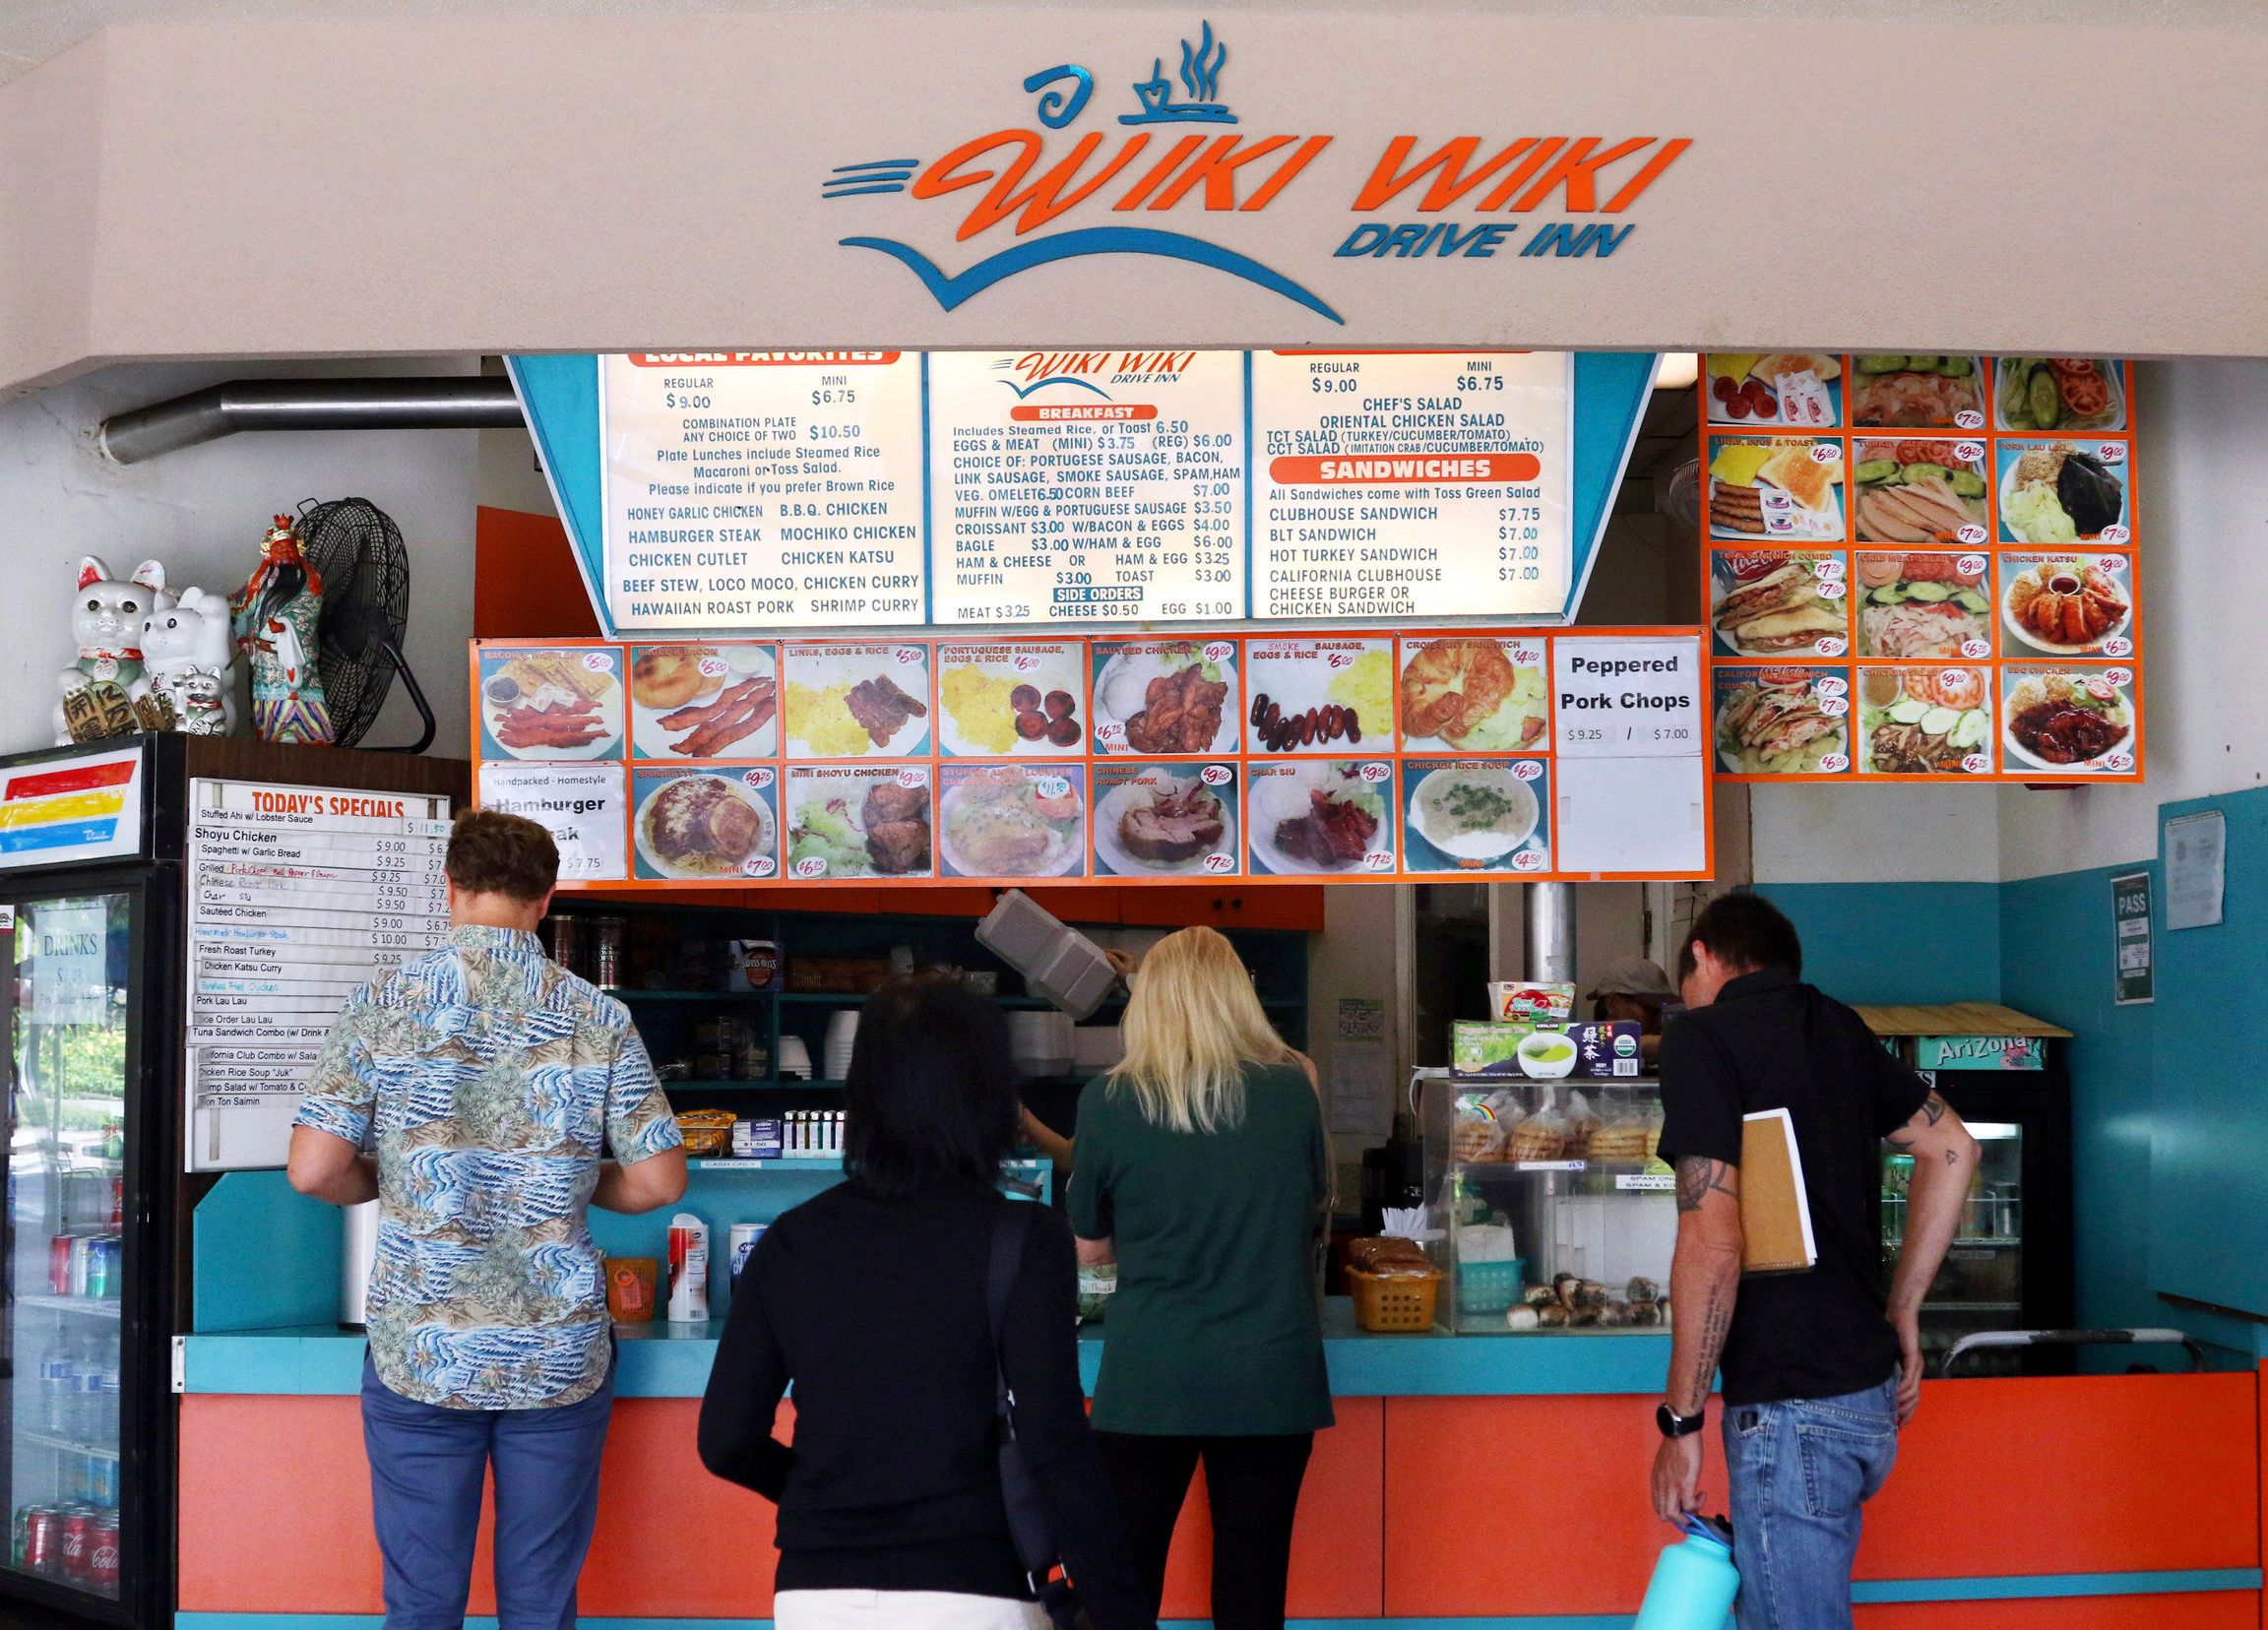 In this Thursday, March 14, 2019 photo, customers line up at the Wiki Wiki Drive Inn takeout restaurant counter in Honolulu. Hawaii would be the first state in the nation to ban most plastics used at restaurants, including polystyrene foam containers, if legislation lawmakers are considering is enacted. (AP Photo/Audrey McAvoy)